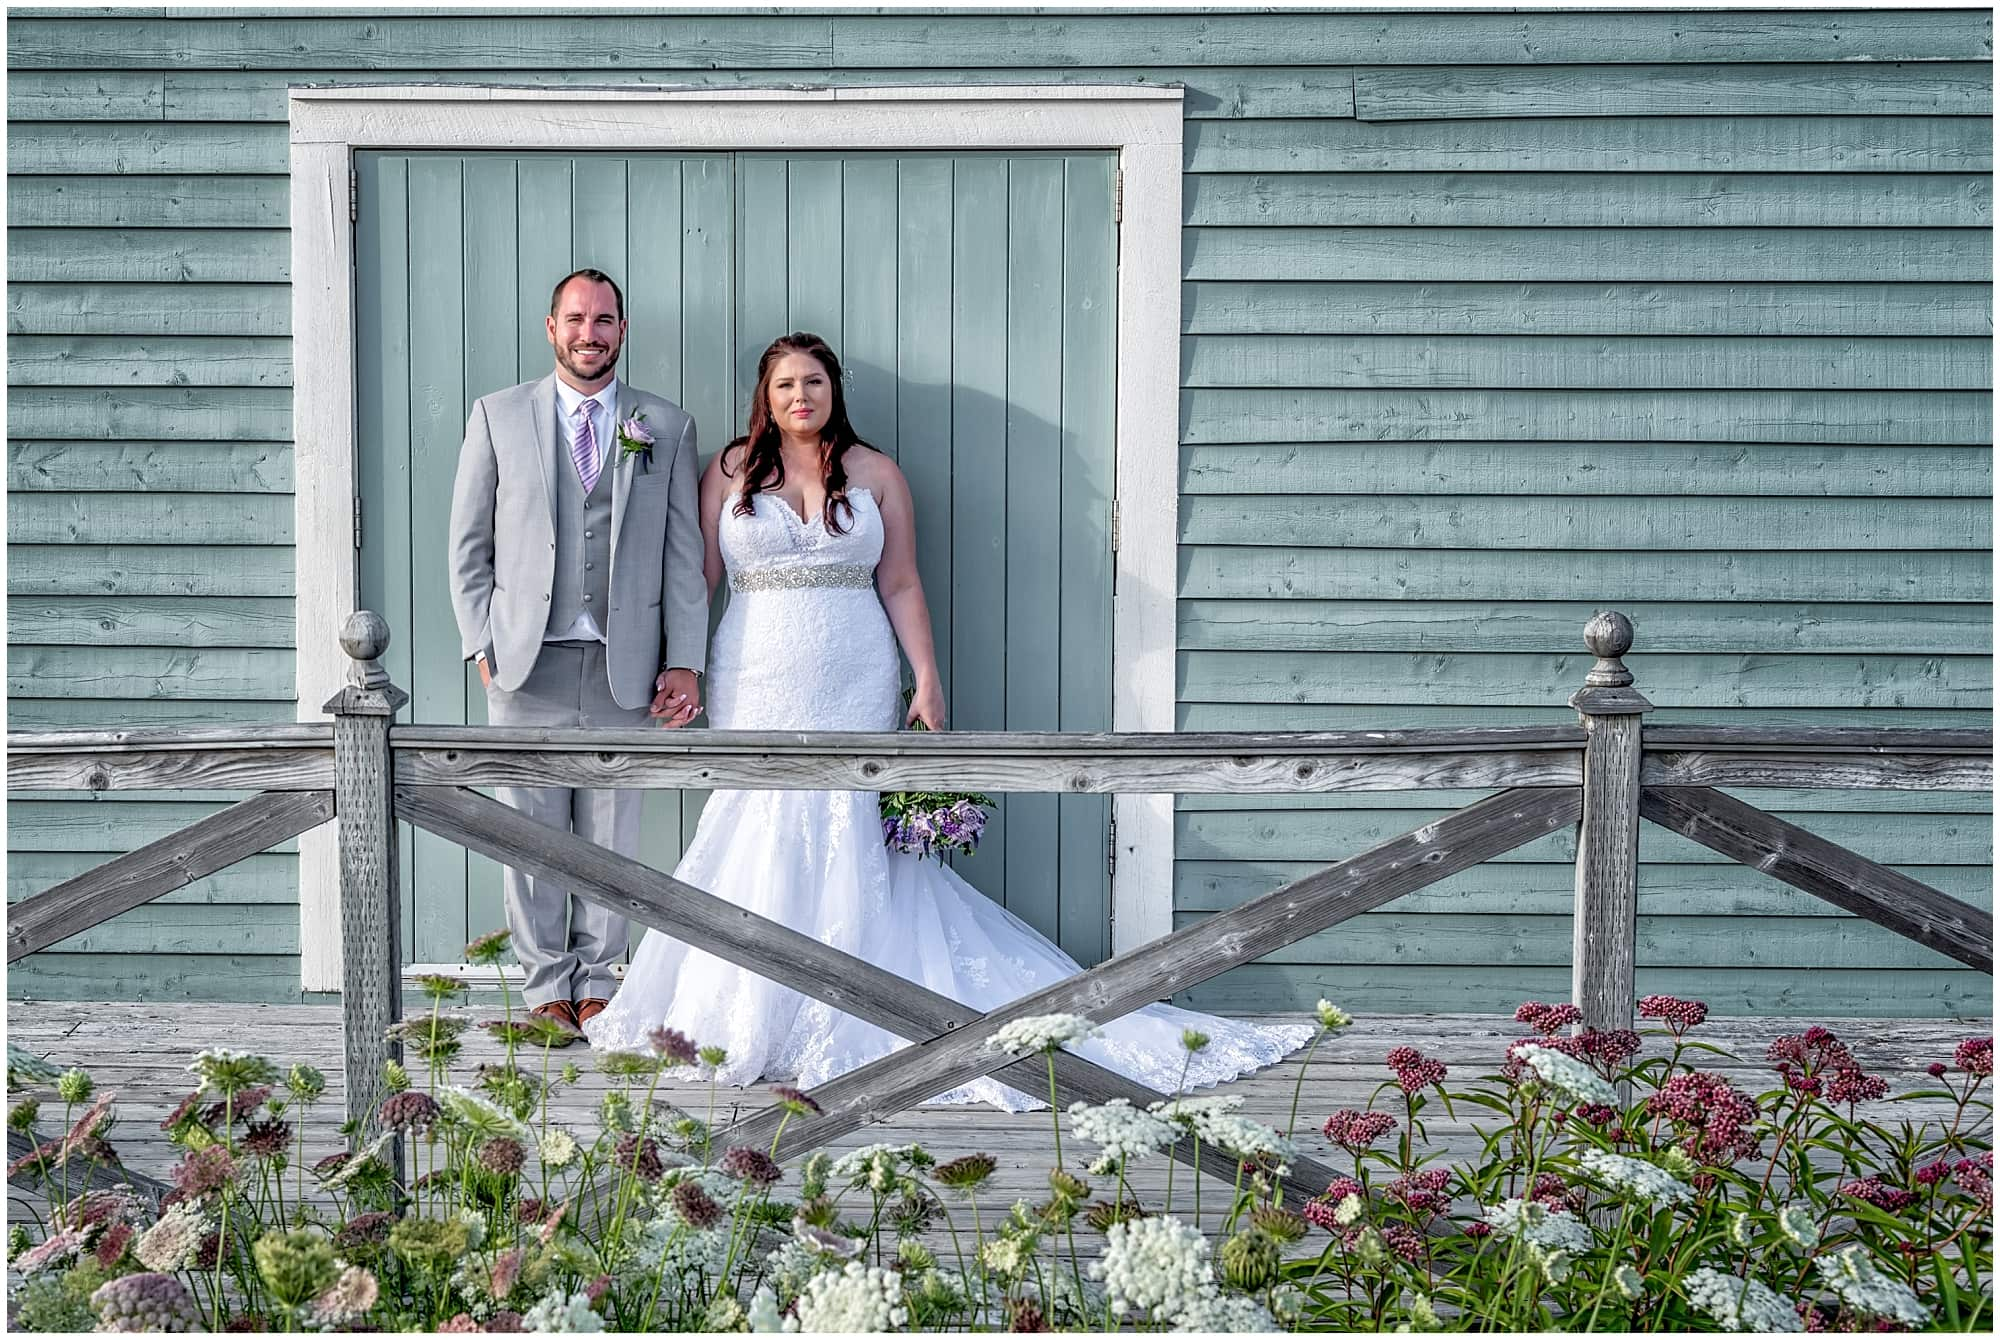 The bride and groom pose for wedding photos at their White Point wedding against a rustic barn style building.